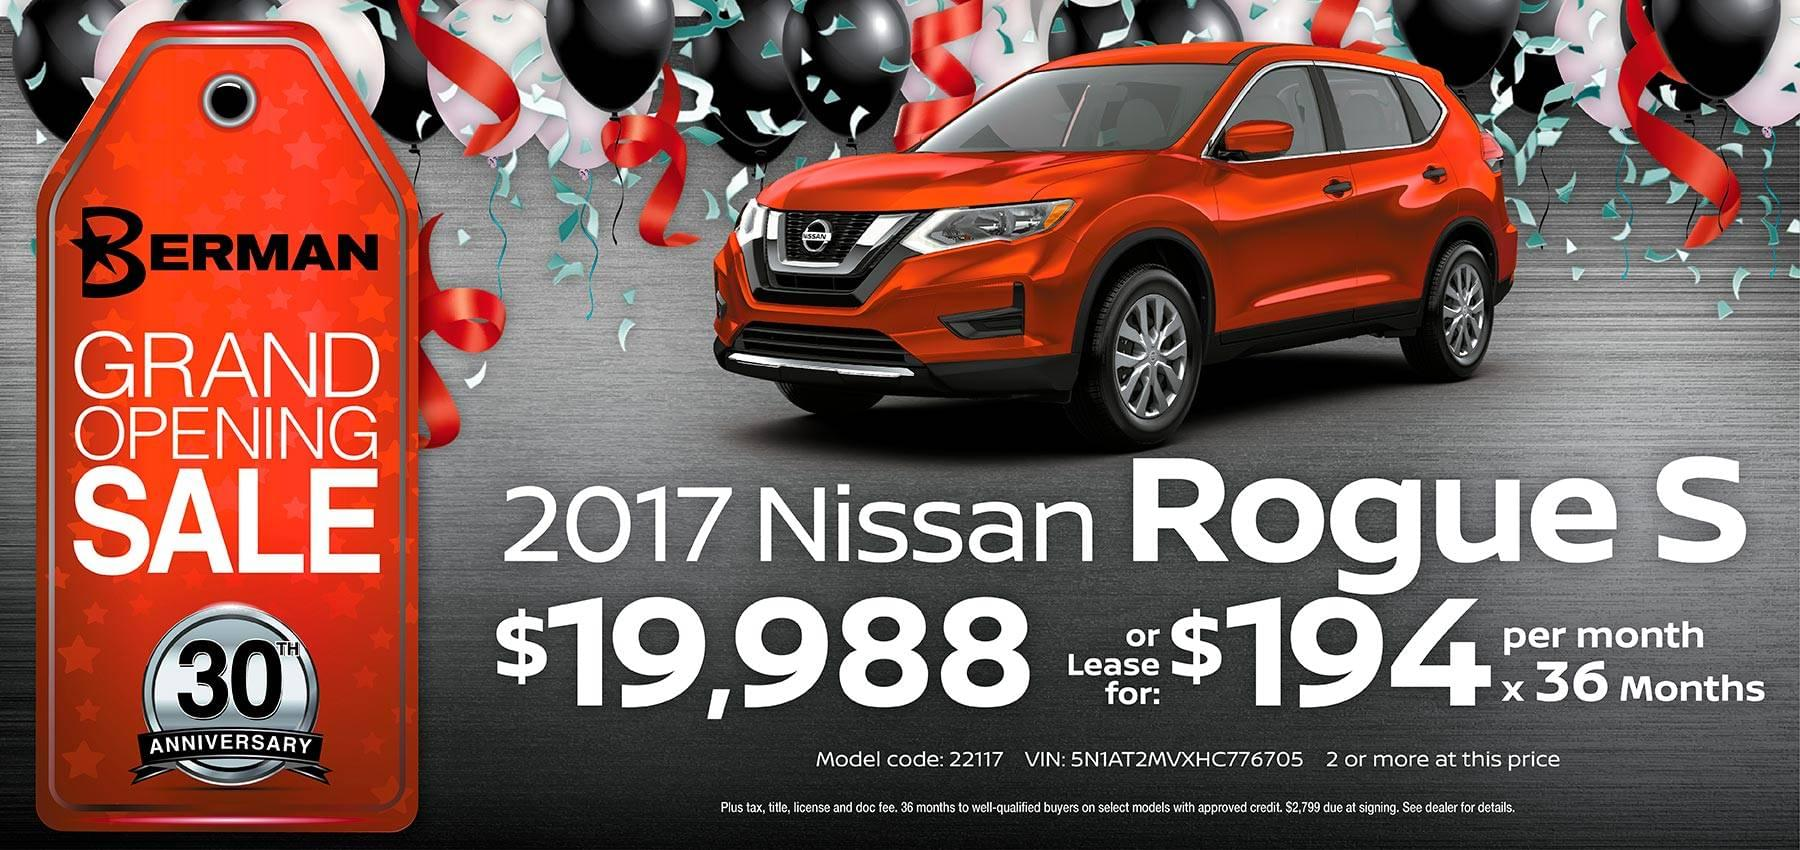 2017 Nissan Rogue Berman Nissan of Chicago March Grand Opening Sale